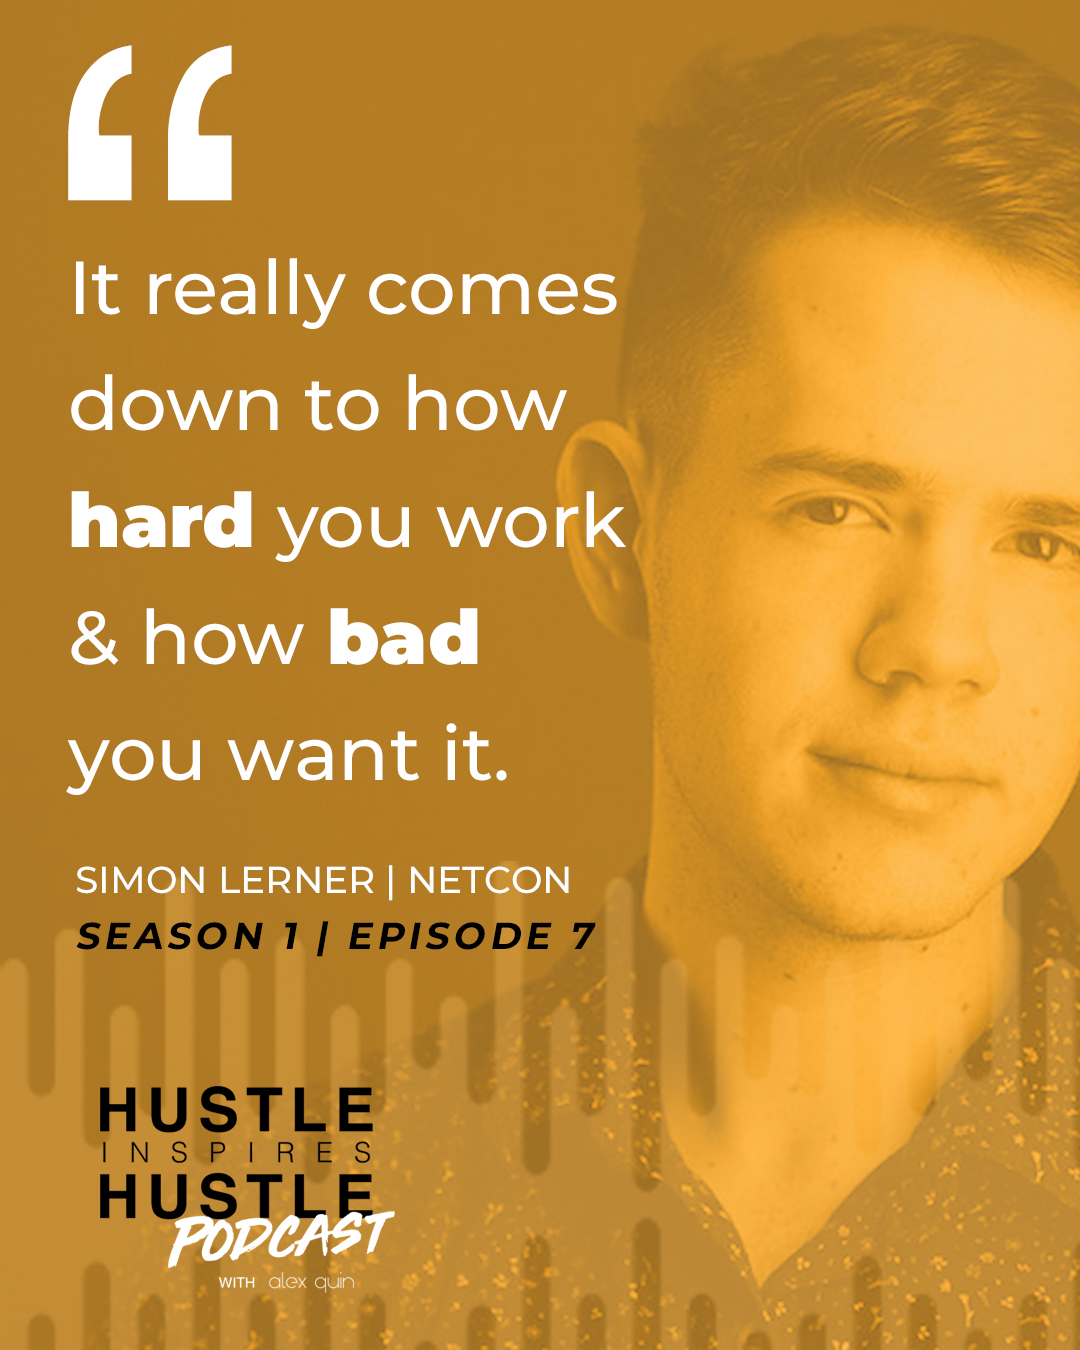 Jose Aristimuno & Alex Quin - On Hustle Inspires Hustle Podcast